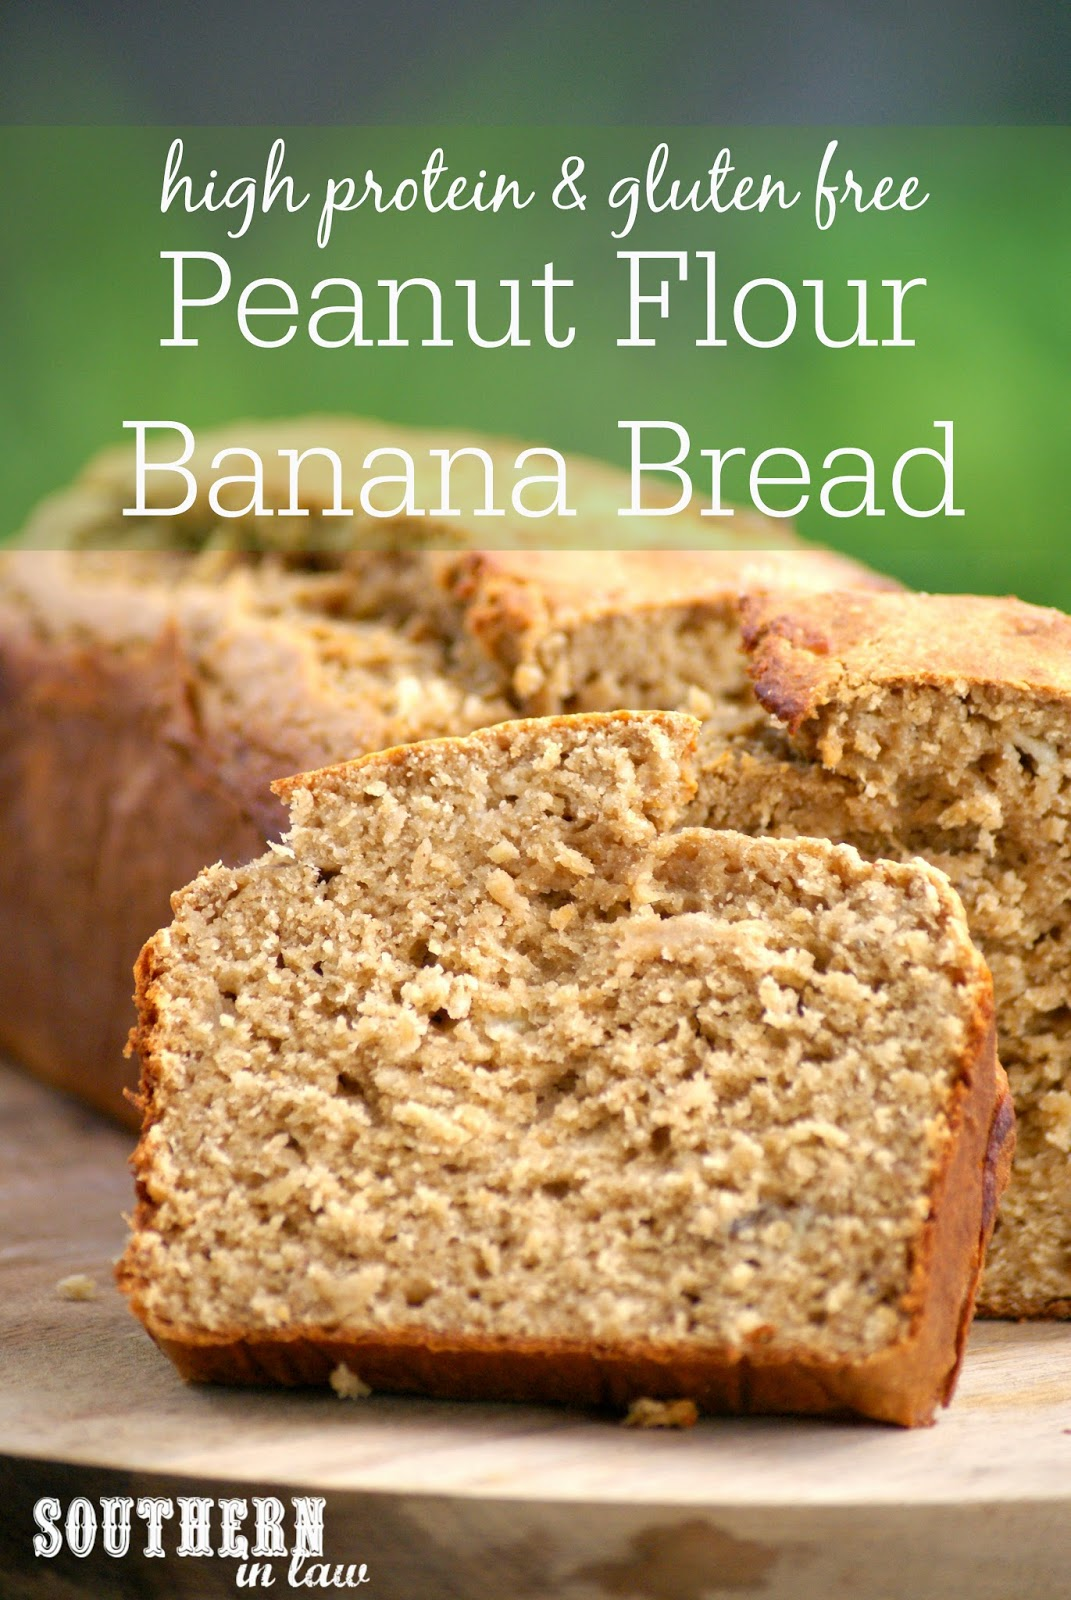 Southern In Law: Recipe: High Protein Peanut Flour Banana Bread